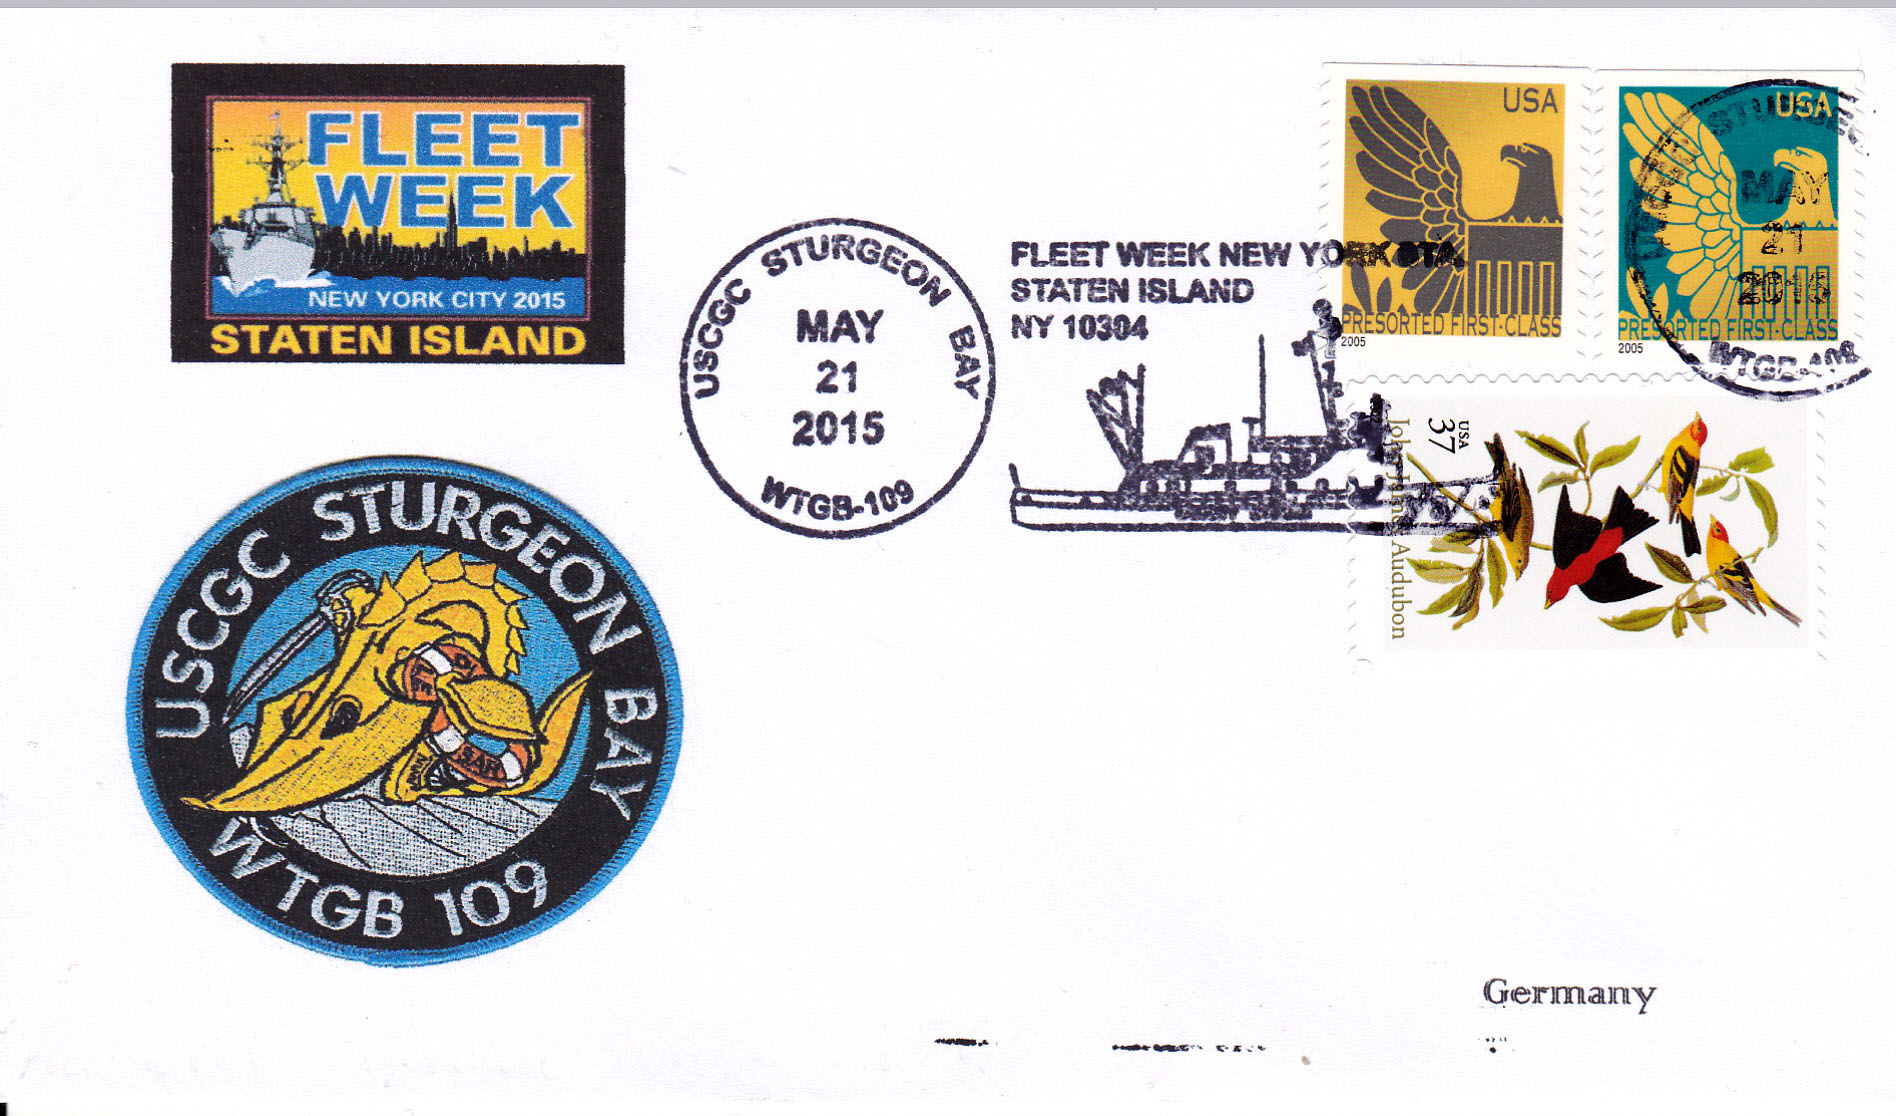 Beleg USCGC STURGEON BAY WTGB-109 Fleet Week New York von Heinz Grasse